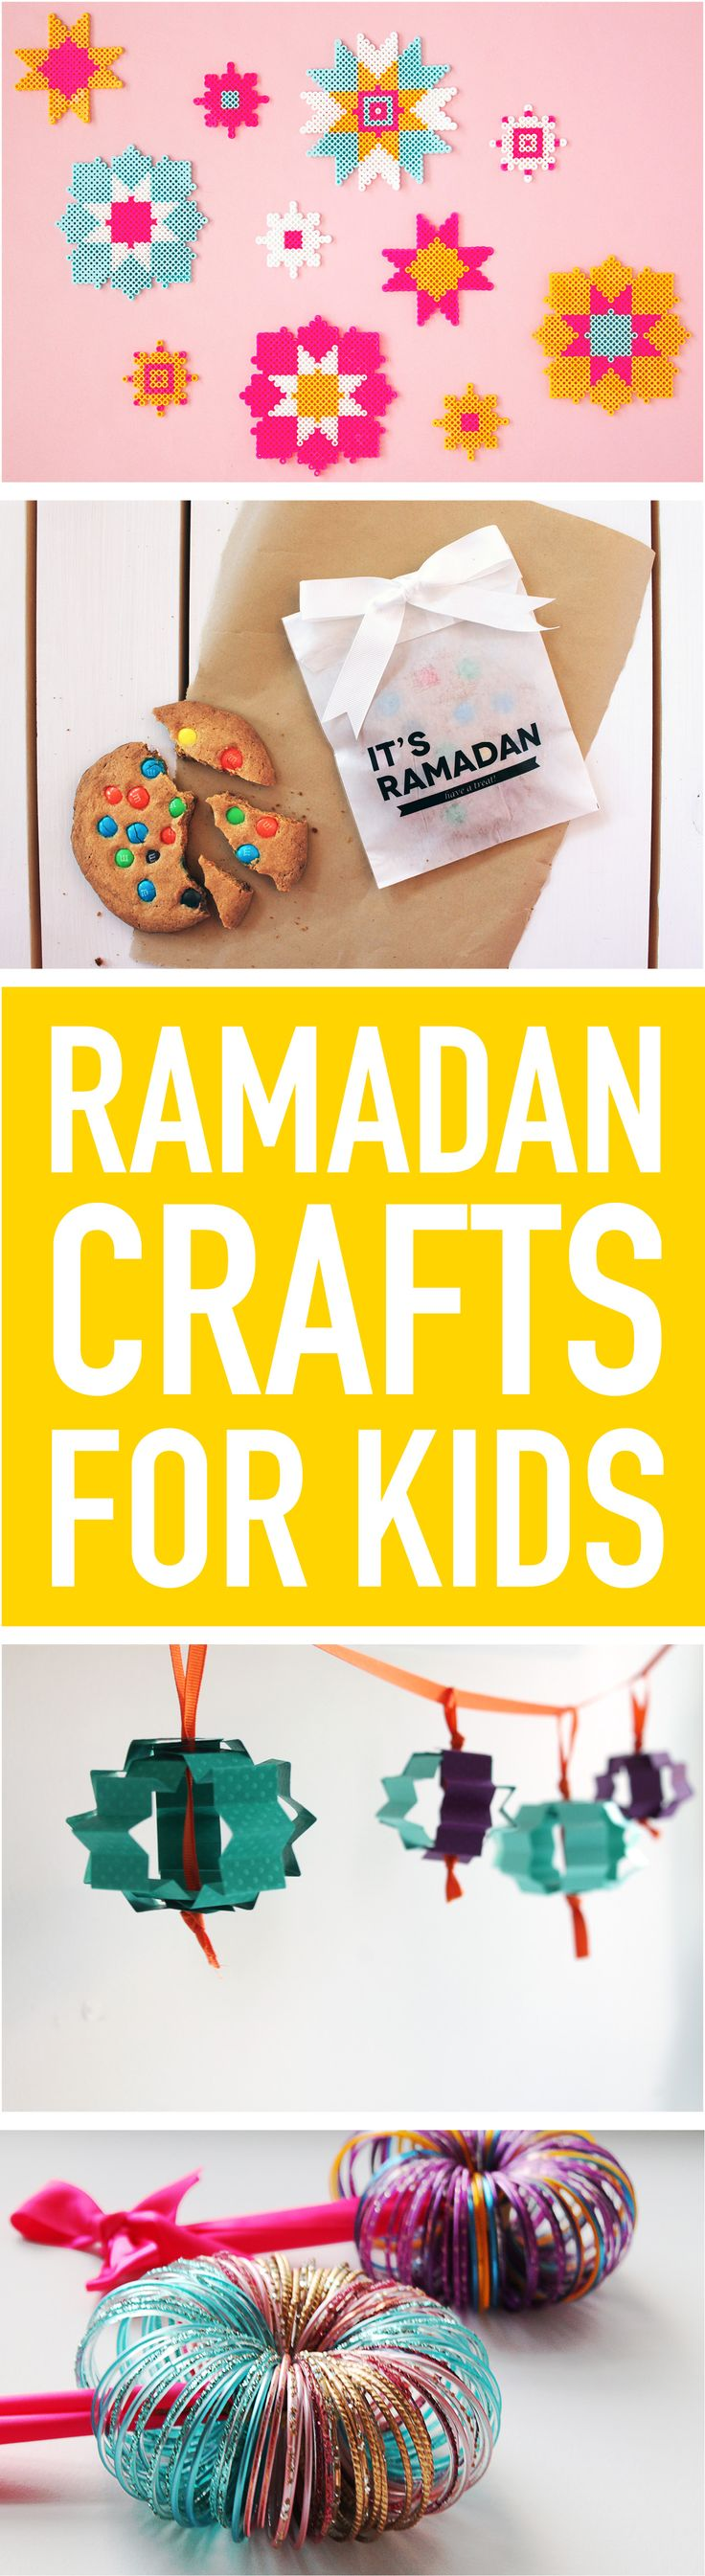 Stumped on how to decorate for Ramadan? Take to these DIY crafts for a modern twist!